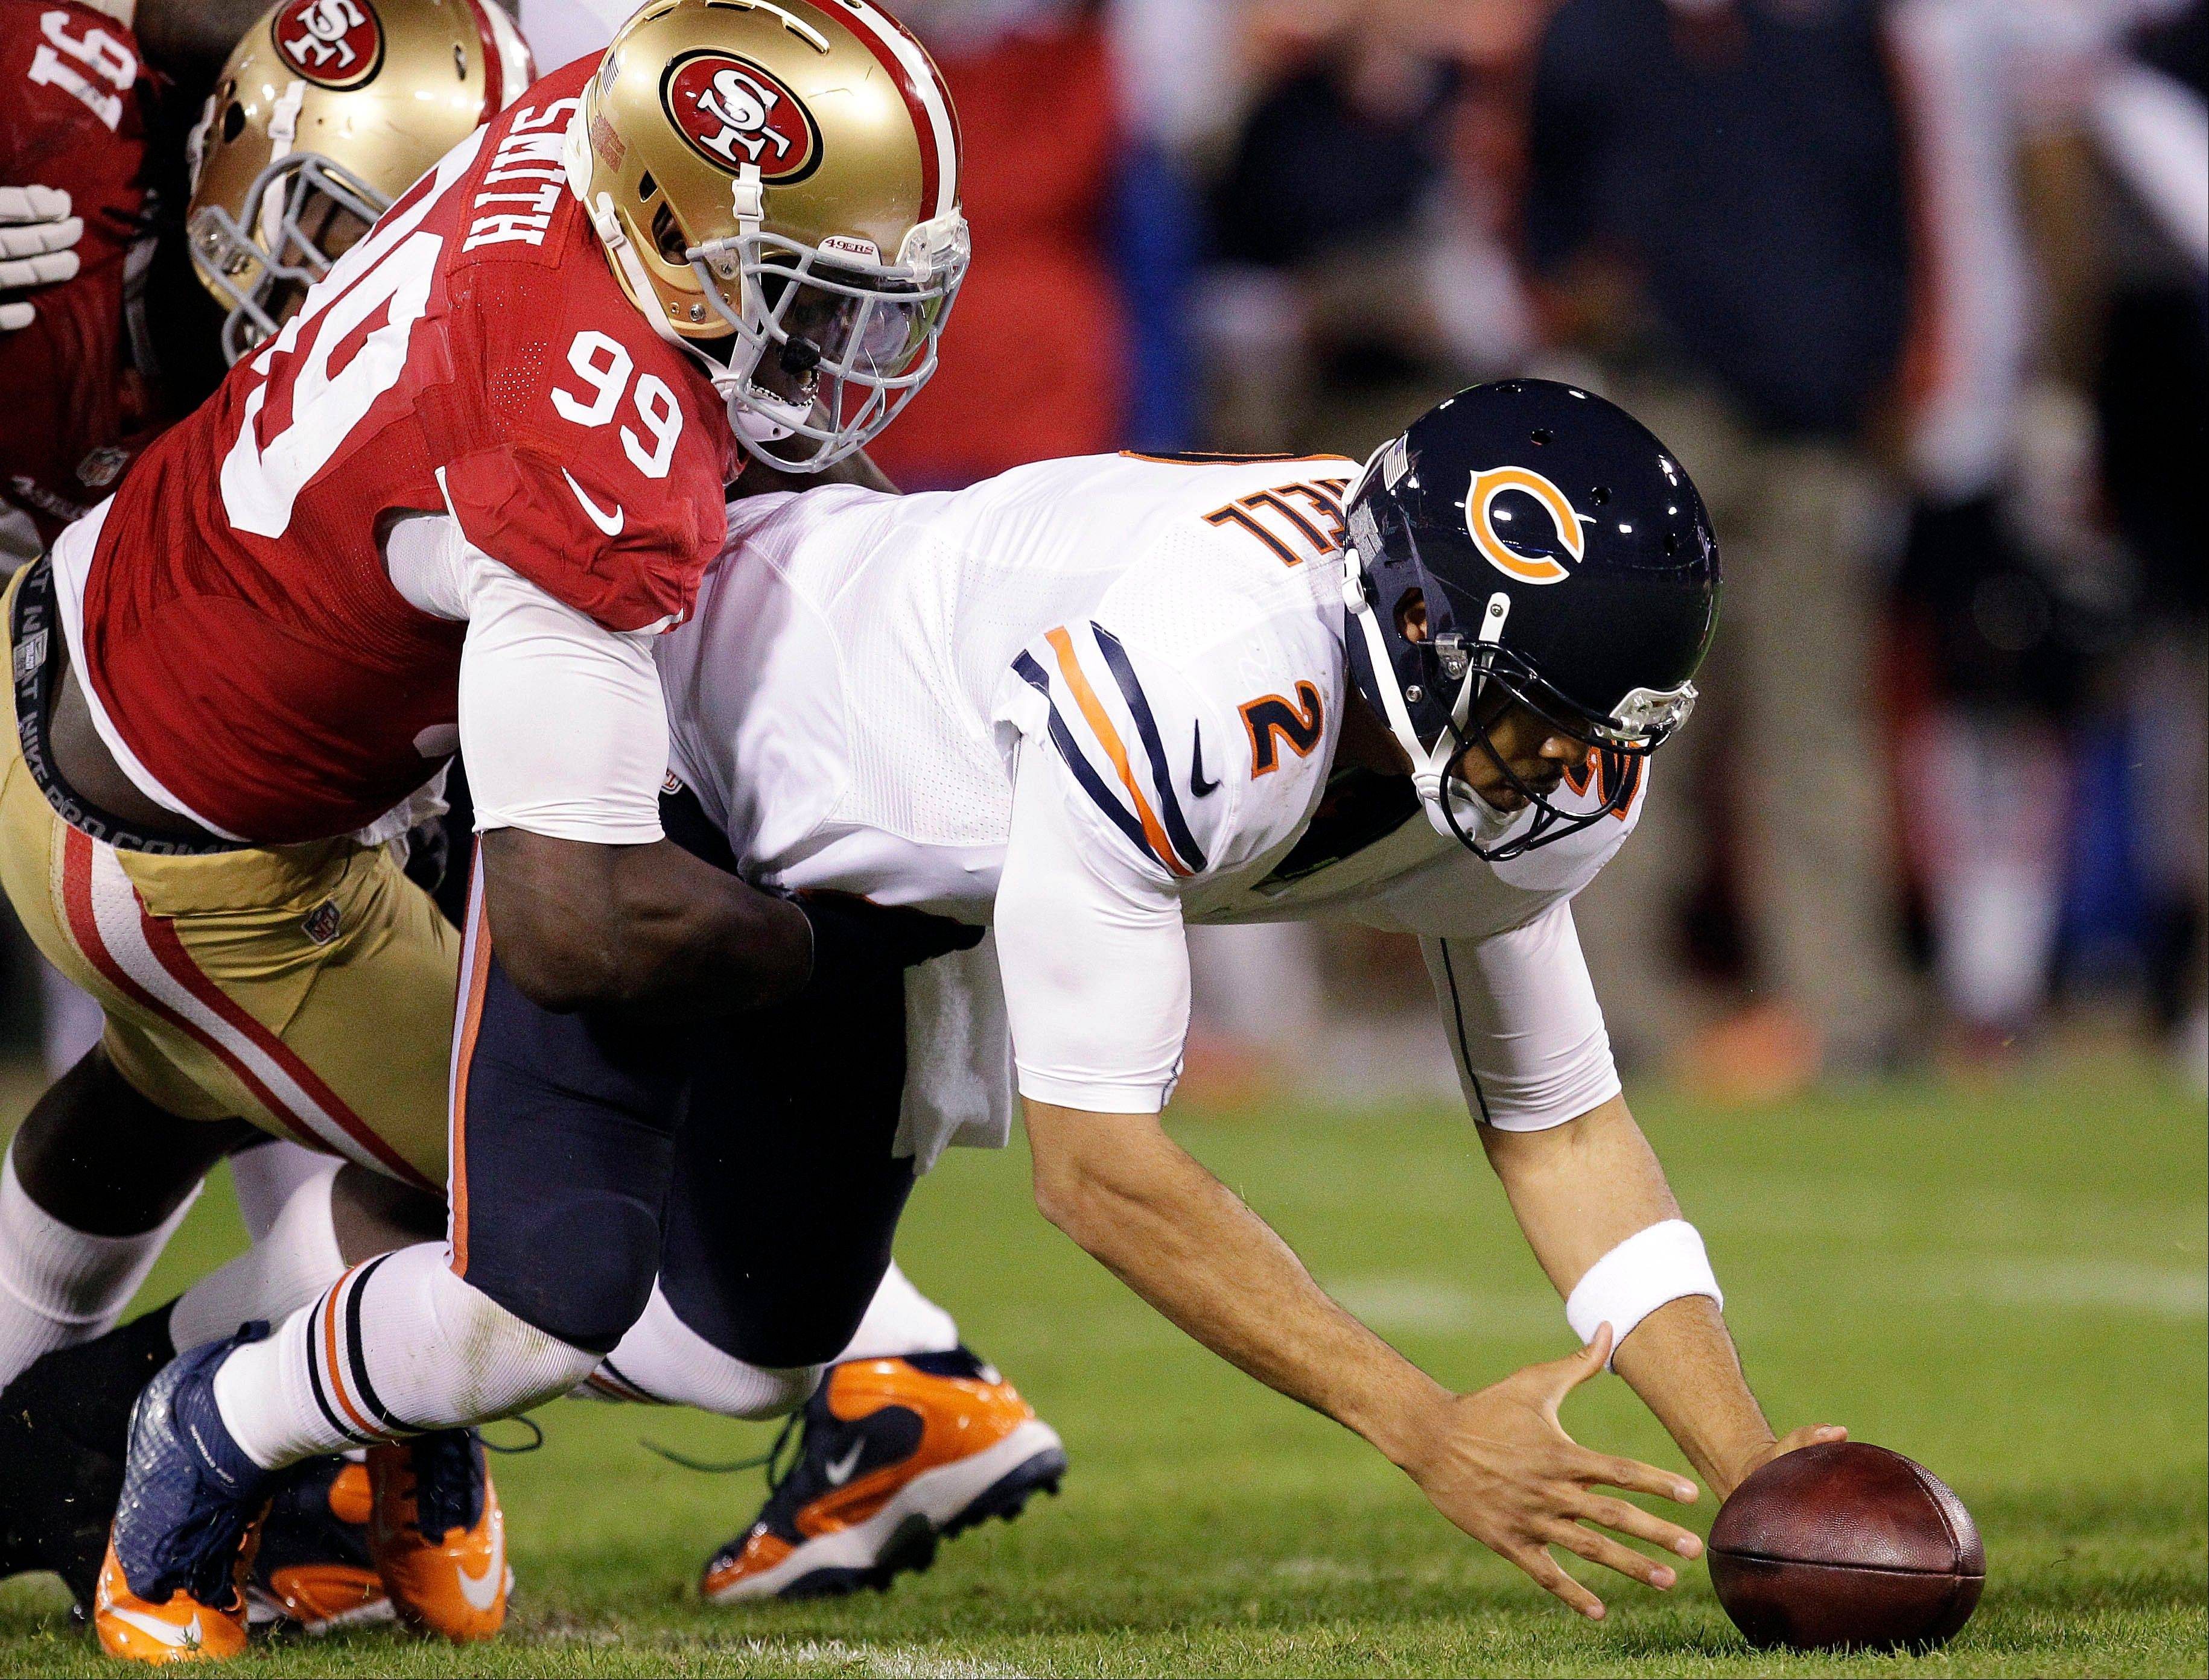 Chicago Bears quarterback Jason Campbell recovers his own fumble after being sacked by San Francisco 49ers linebacker Aldon Smith during the second quarter.